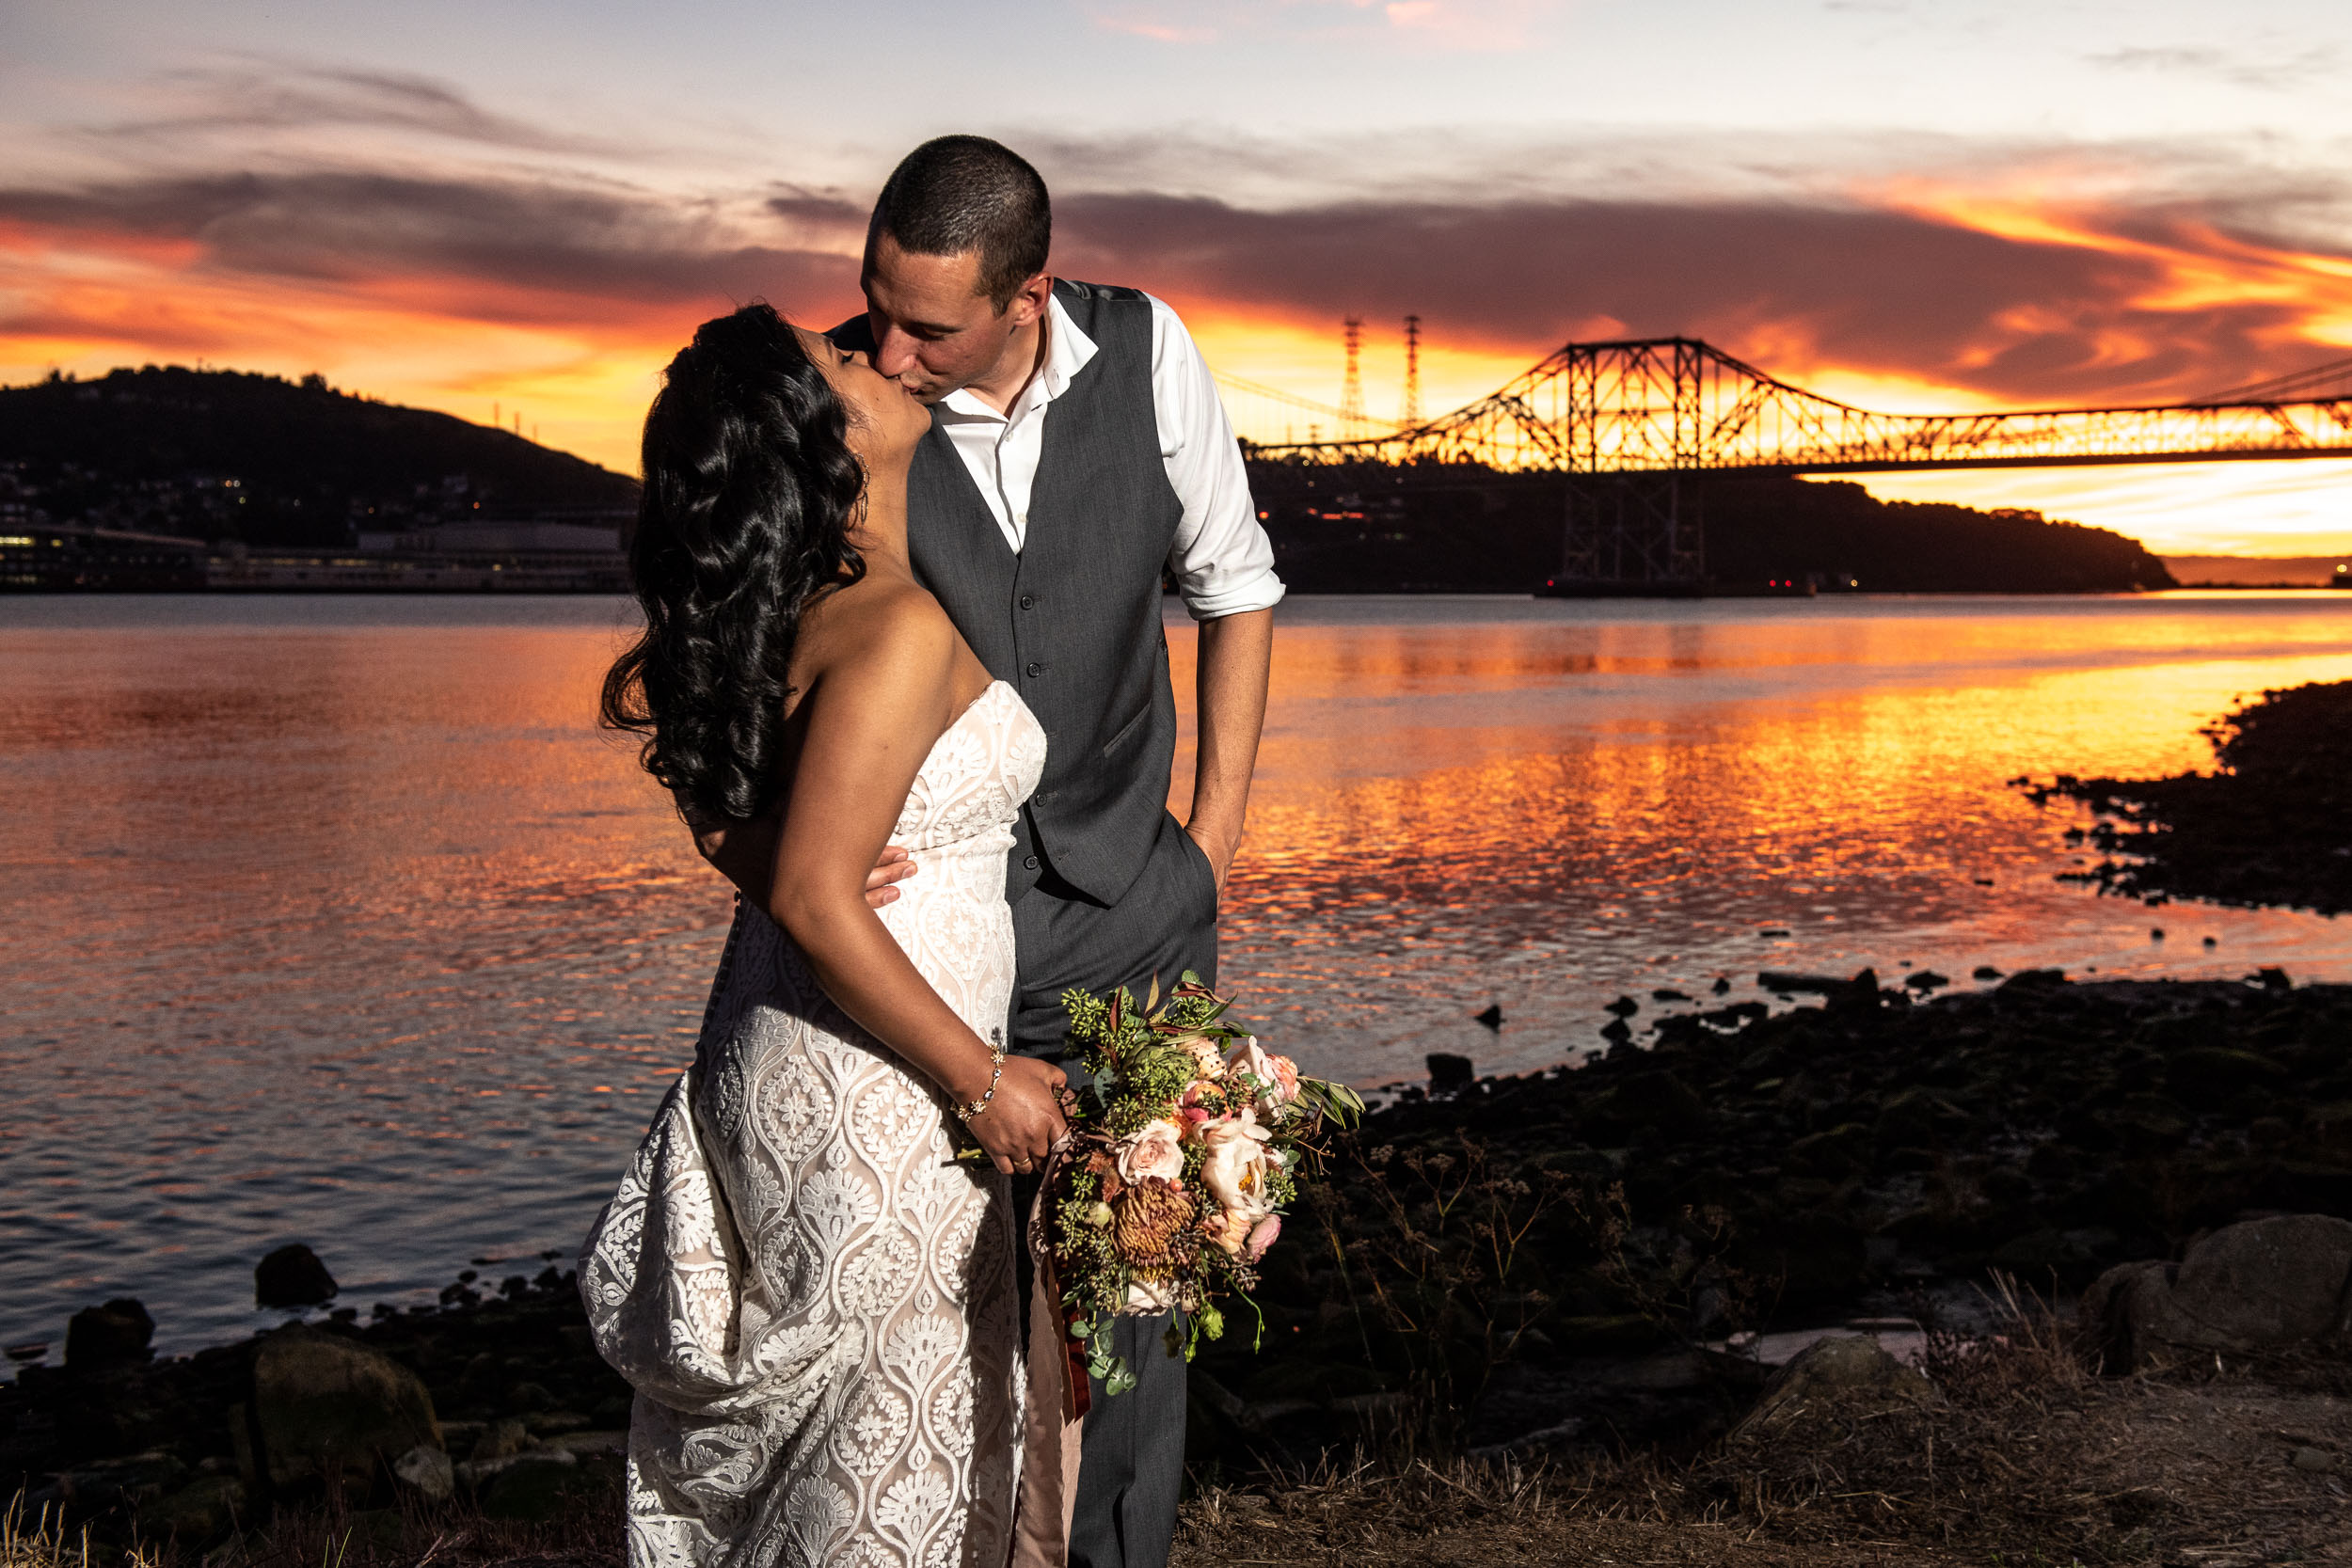 the-lighthouse-at-glen-cove-marina-vallejo-wedding-photography-28.jpg